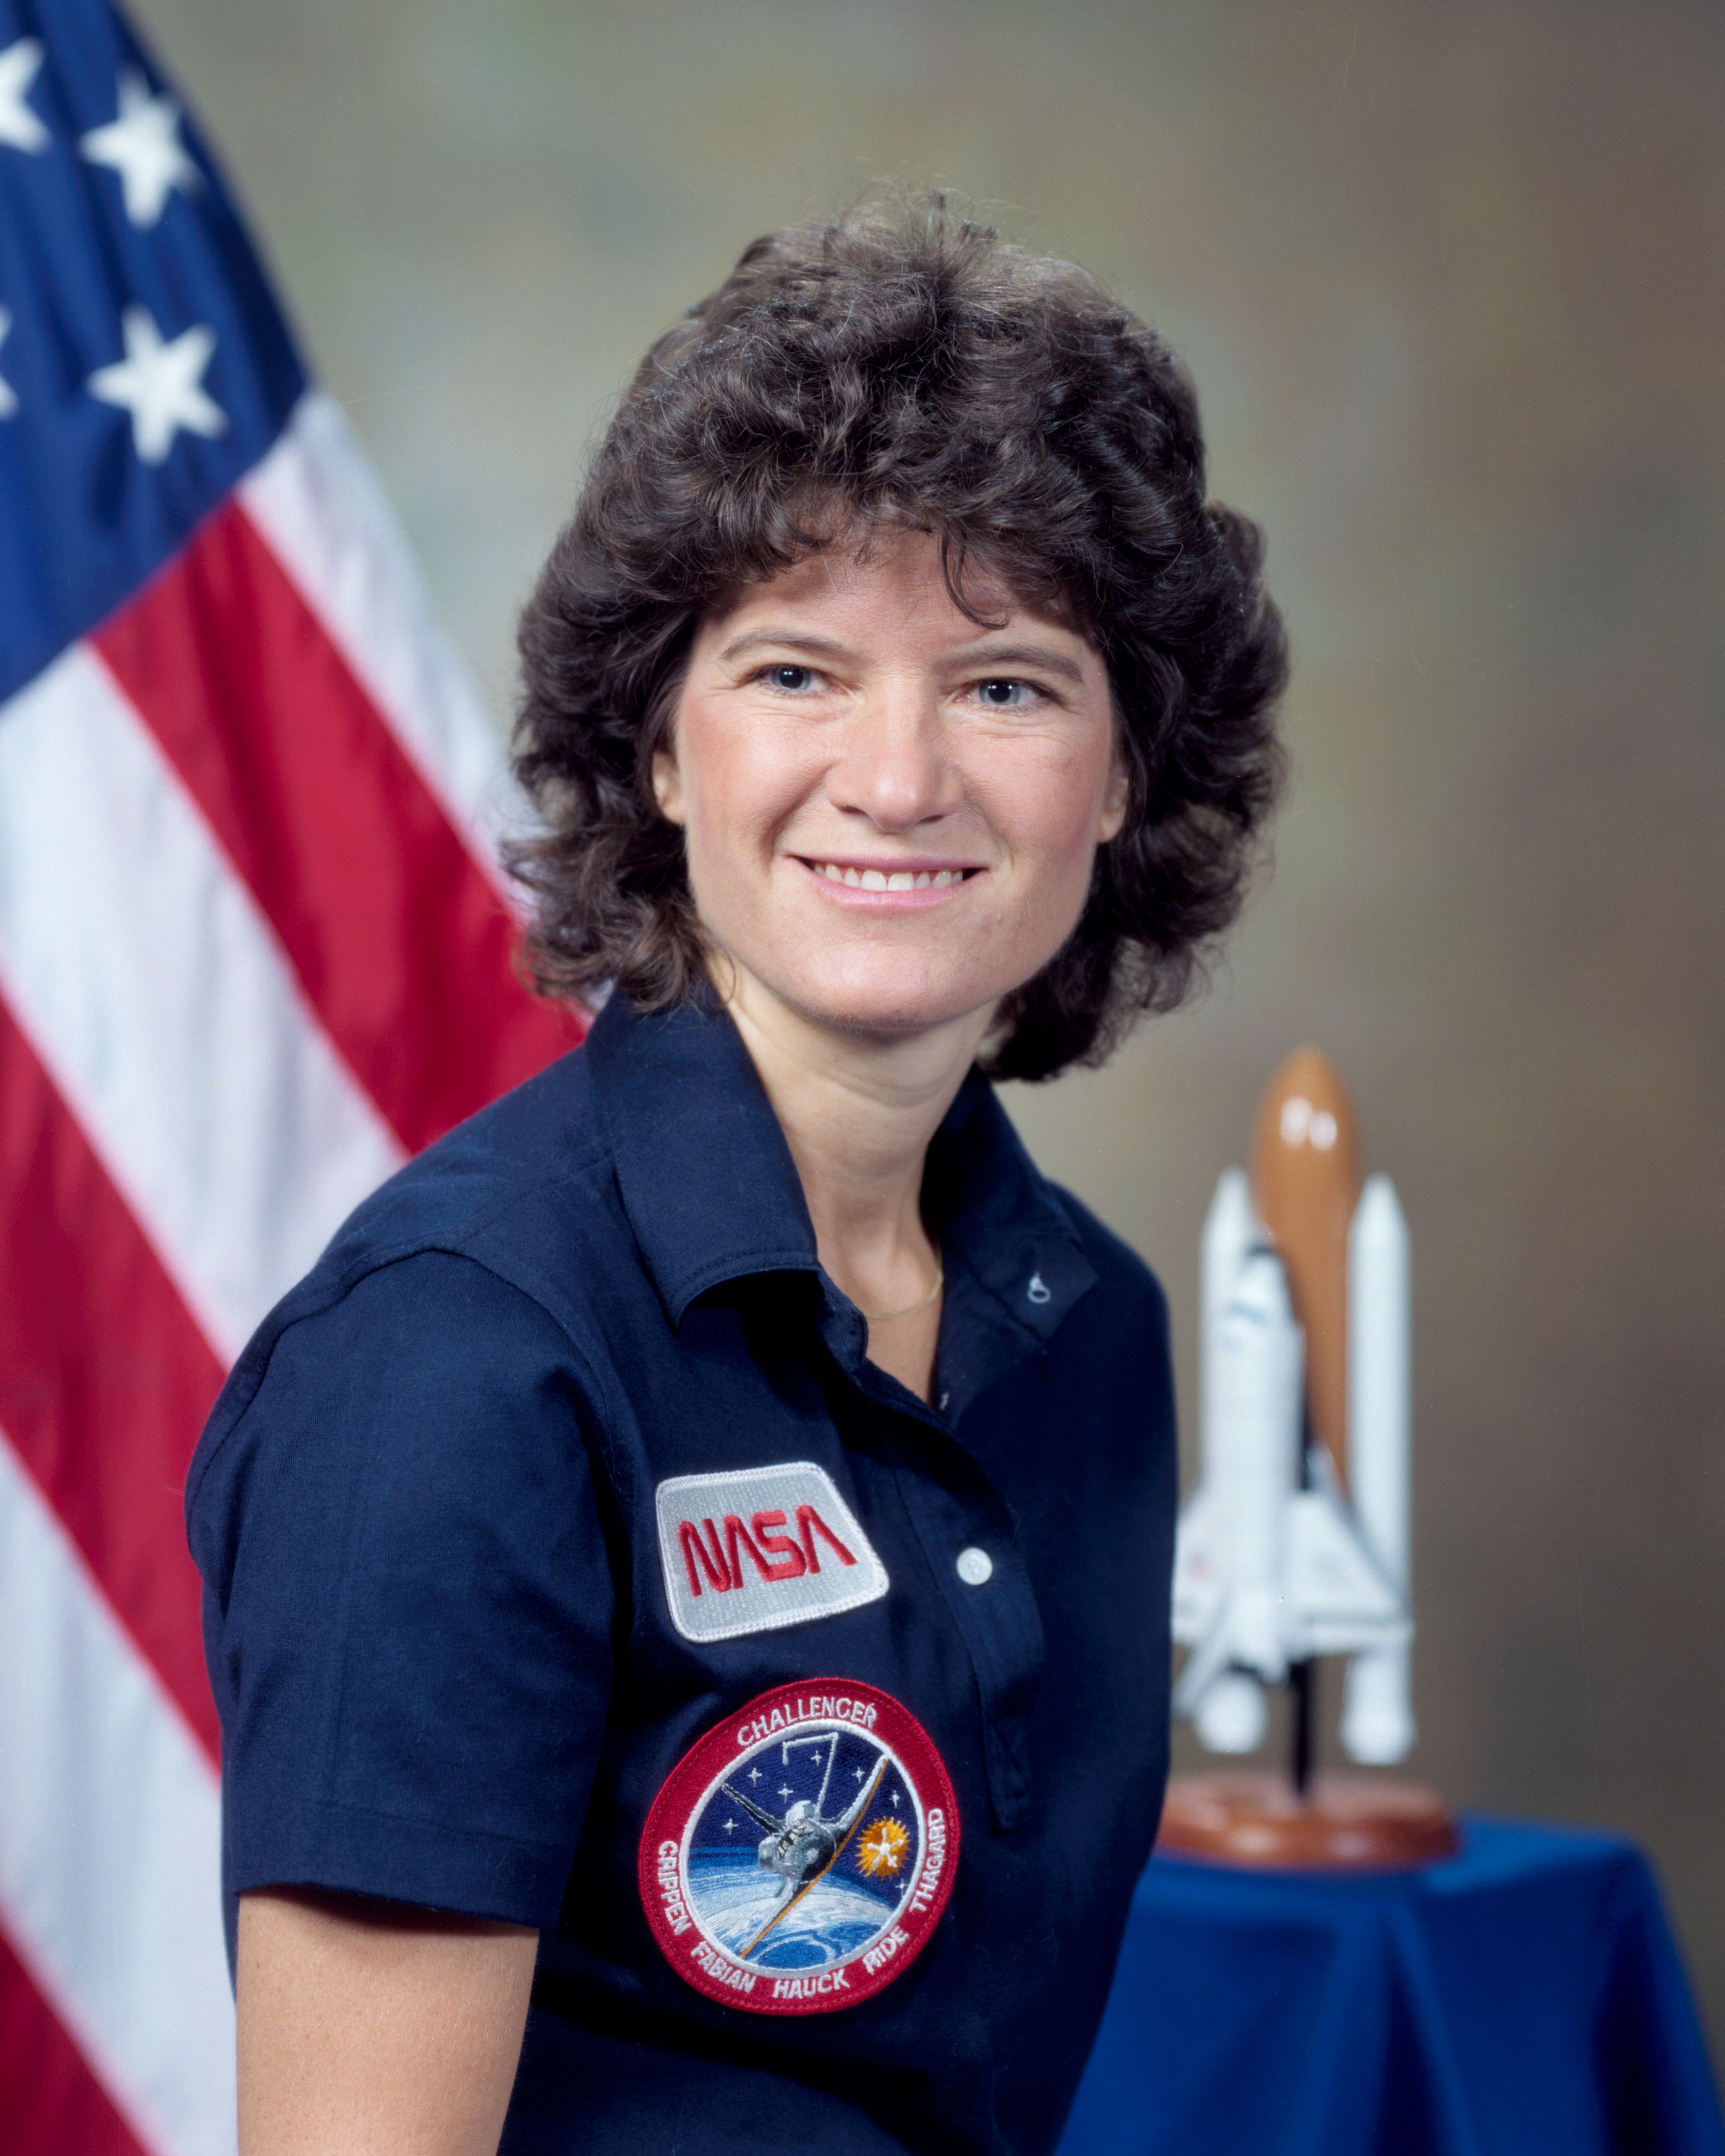 Sally Ride was the first American woman in space, 1984.